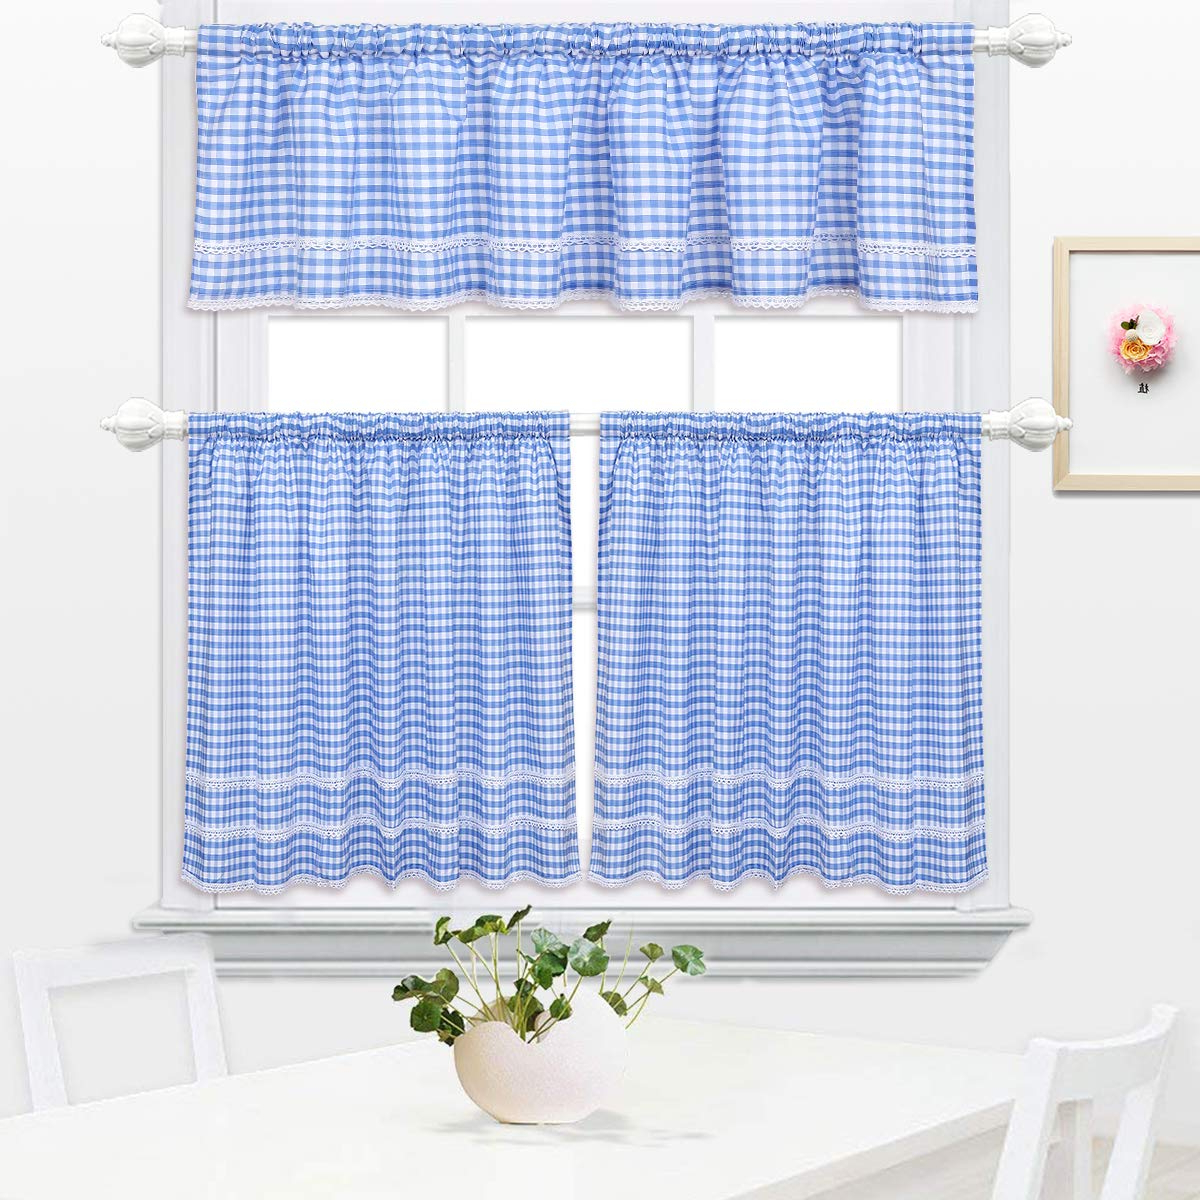 2021 Glasgow Curtain Tier Sets Throughout Dokot Plaid Country Window Cafe Curtain Tier And Valance Sets With Lace Crochet Border For Home Kitchen 3 Pieces Red (blue) (View 8 of 20)